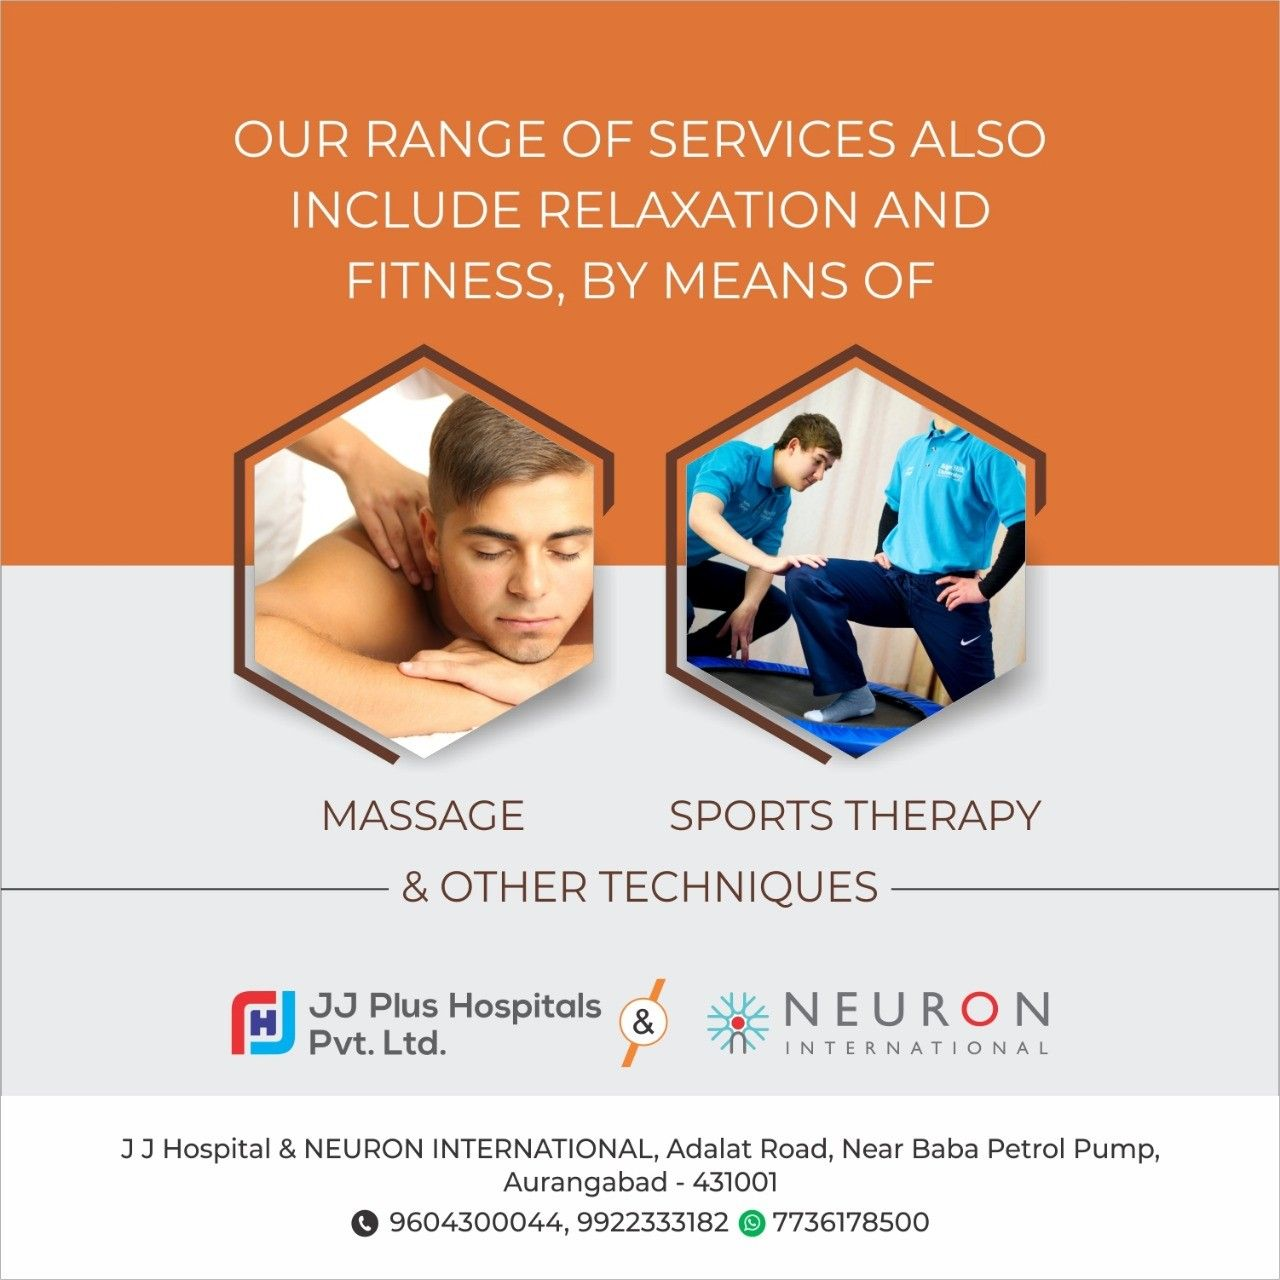 Our range of services also include relaxation and fitness